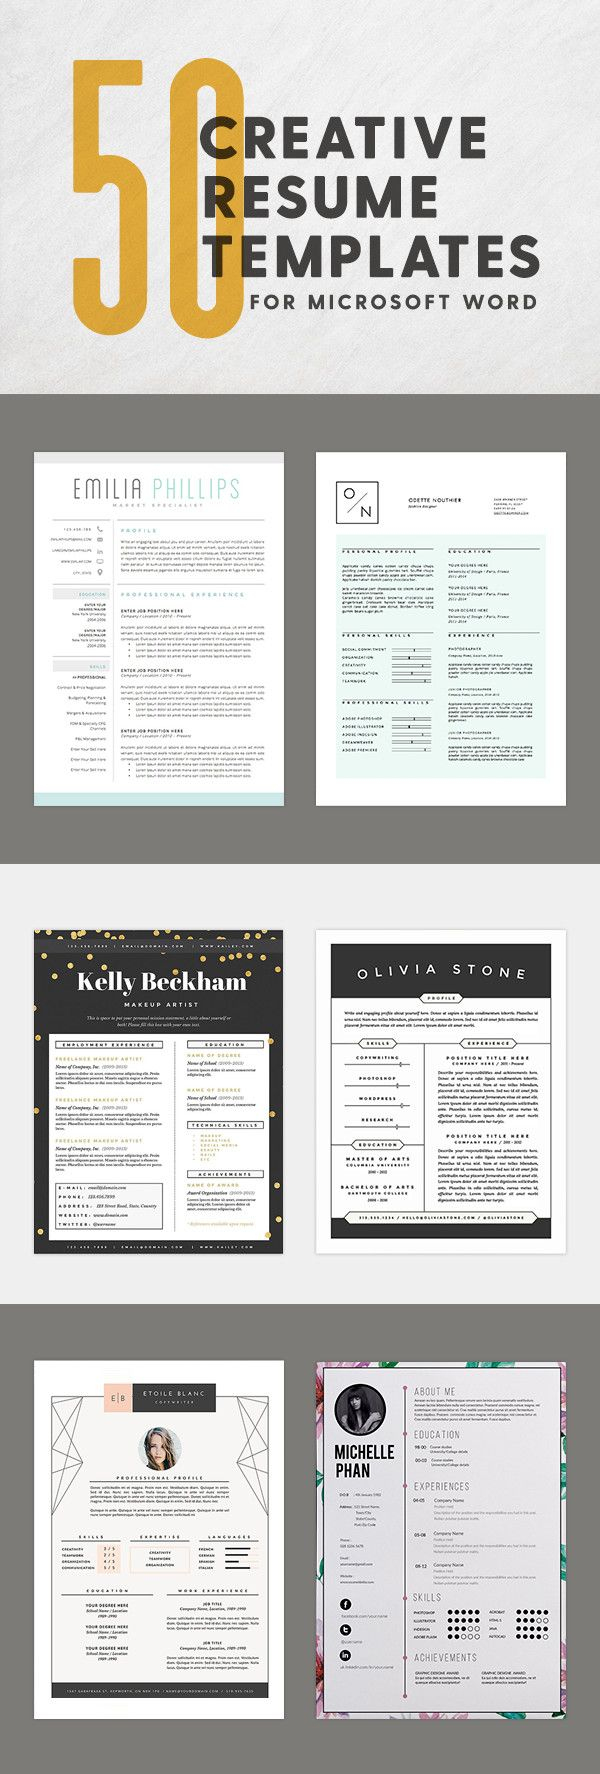 50 creative resume templates you wont believe are microsoft word - Best Fonts For Resume